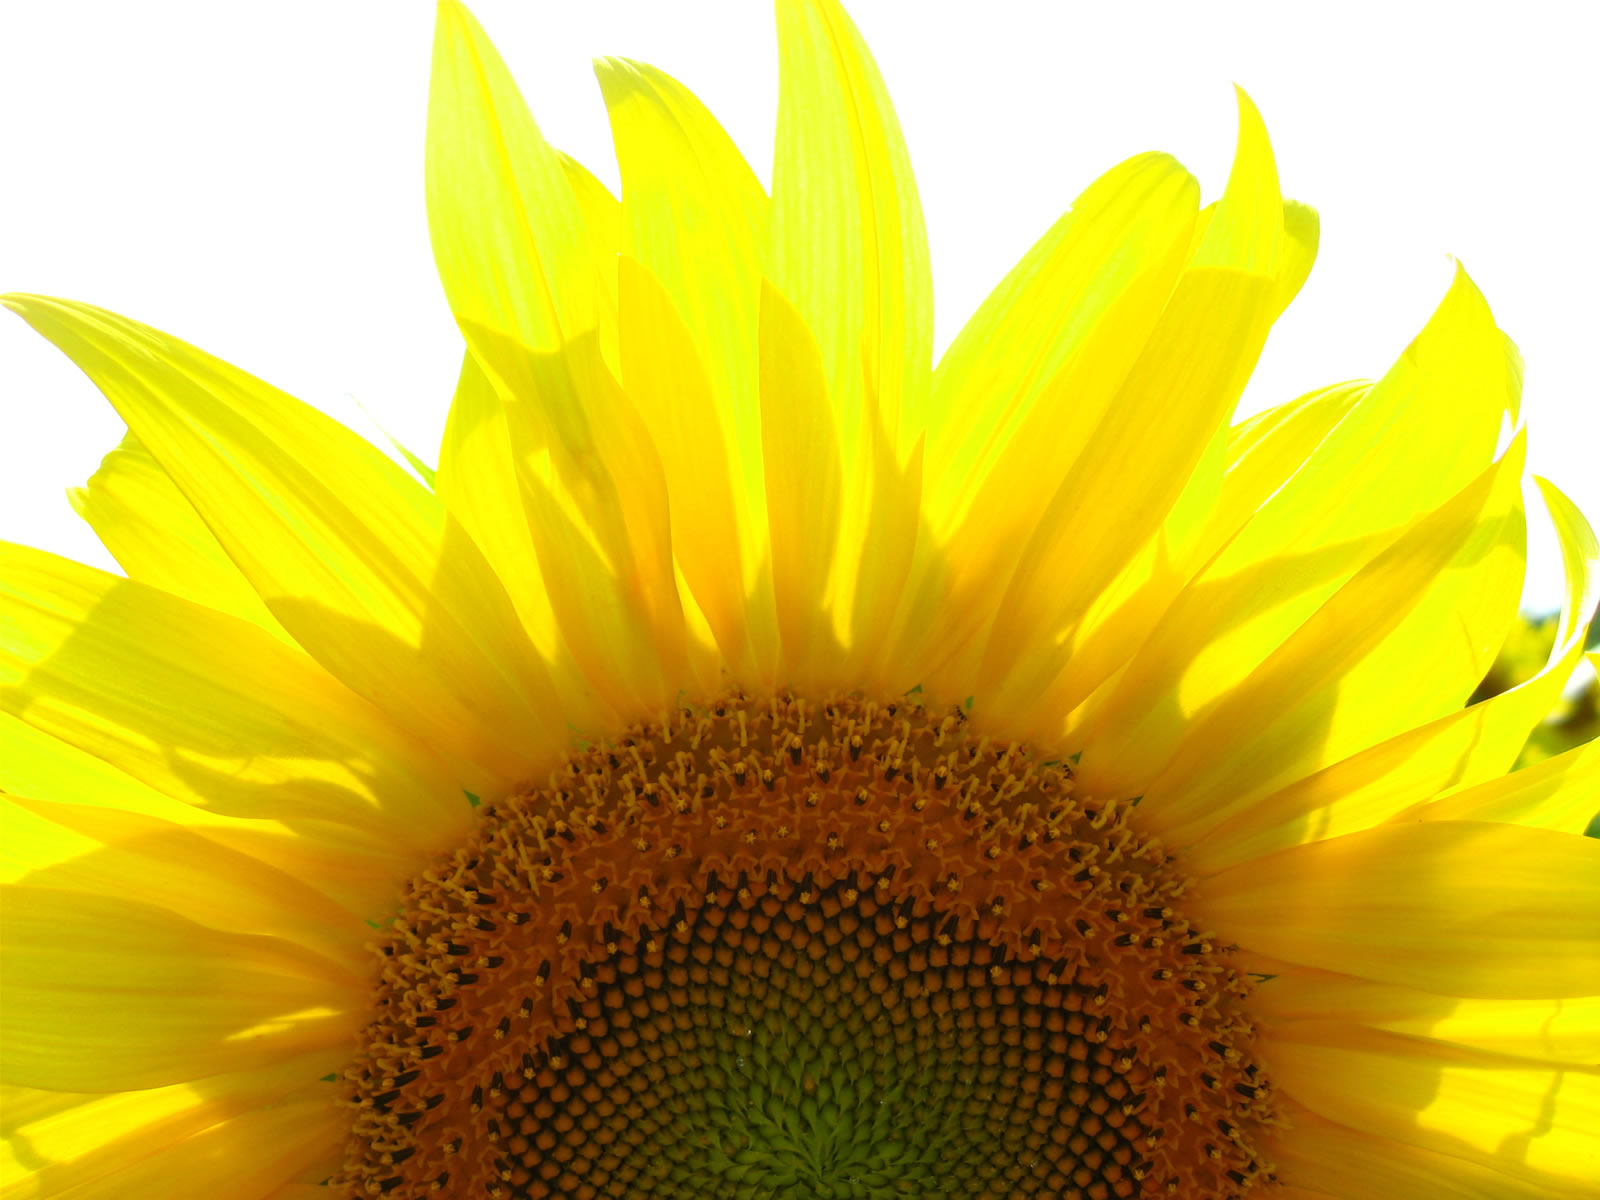 Sunflower Wallpaper  Android Apps on Google Play 1600x1200